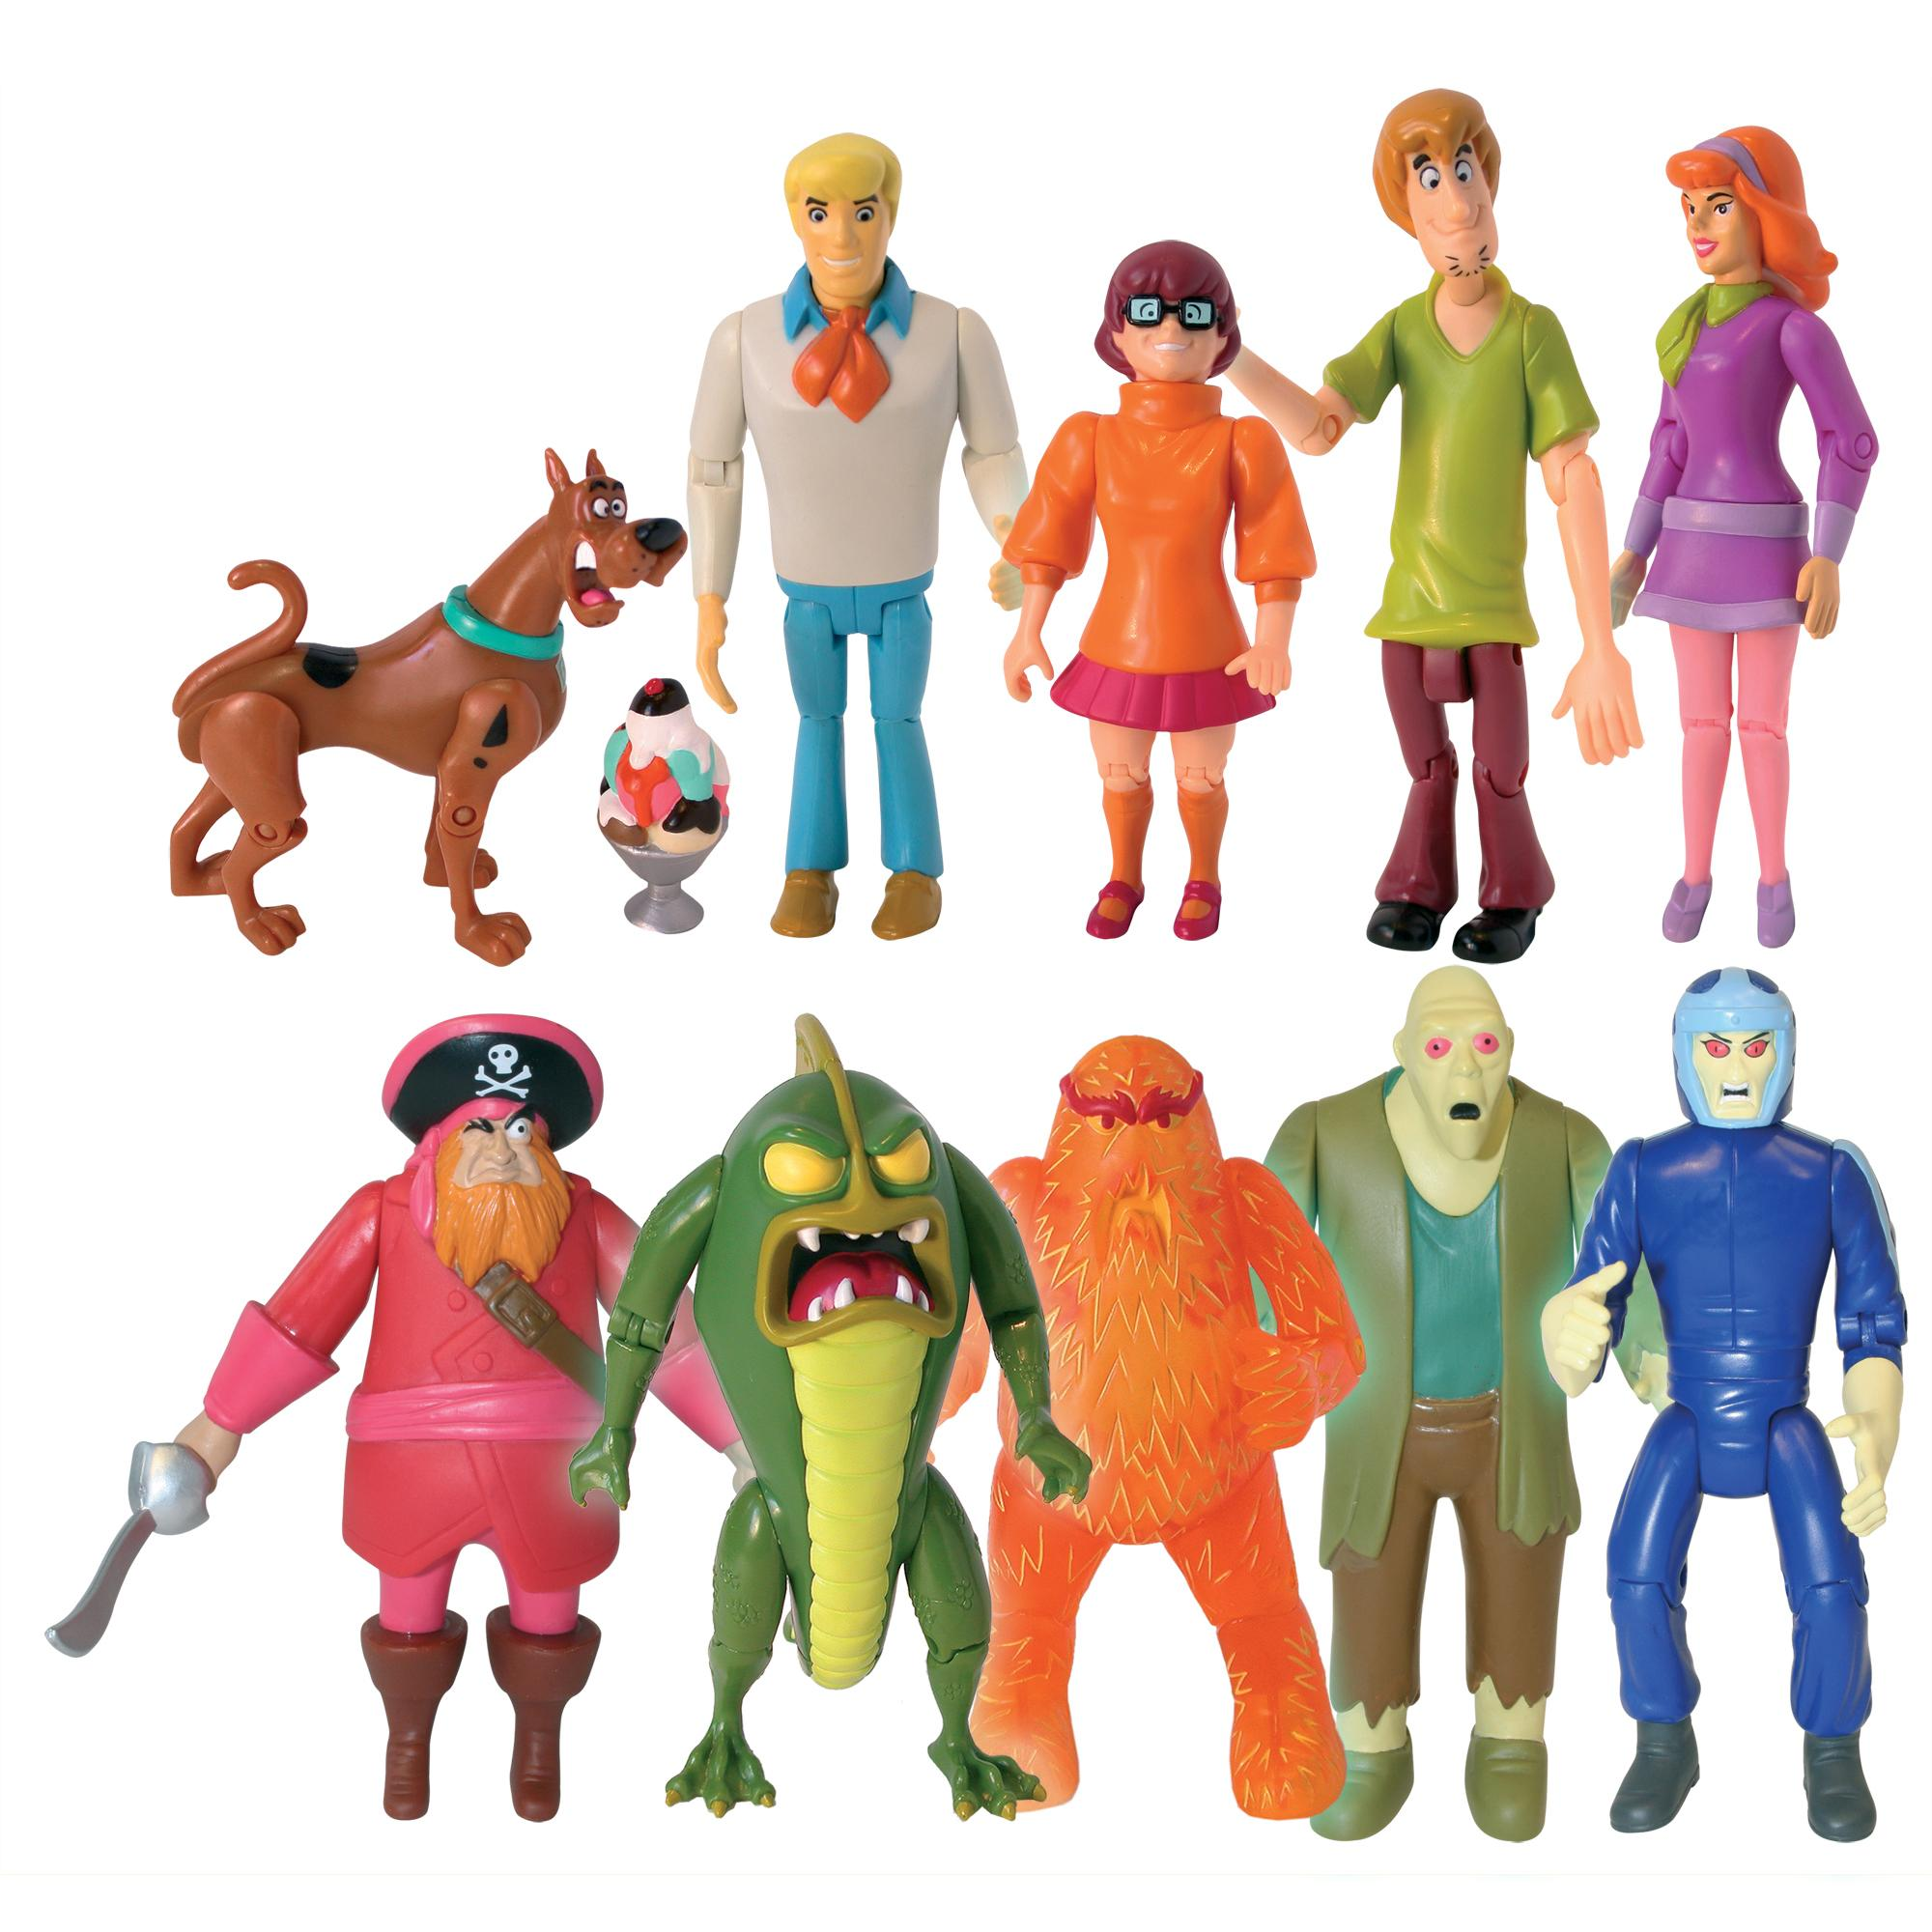 Amazon.com: Scooby Doo Monster Set Action Figure, 10 Pack: Toys & Games